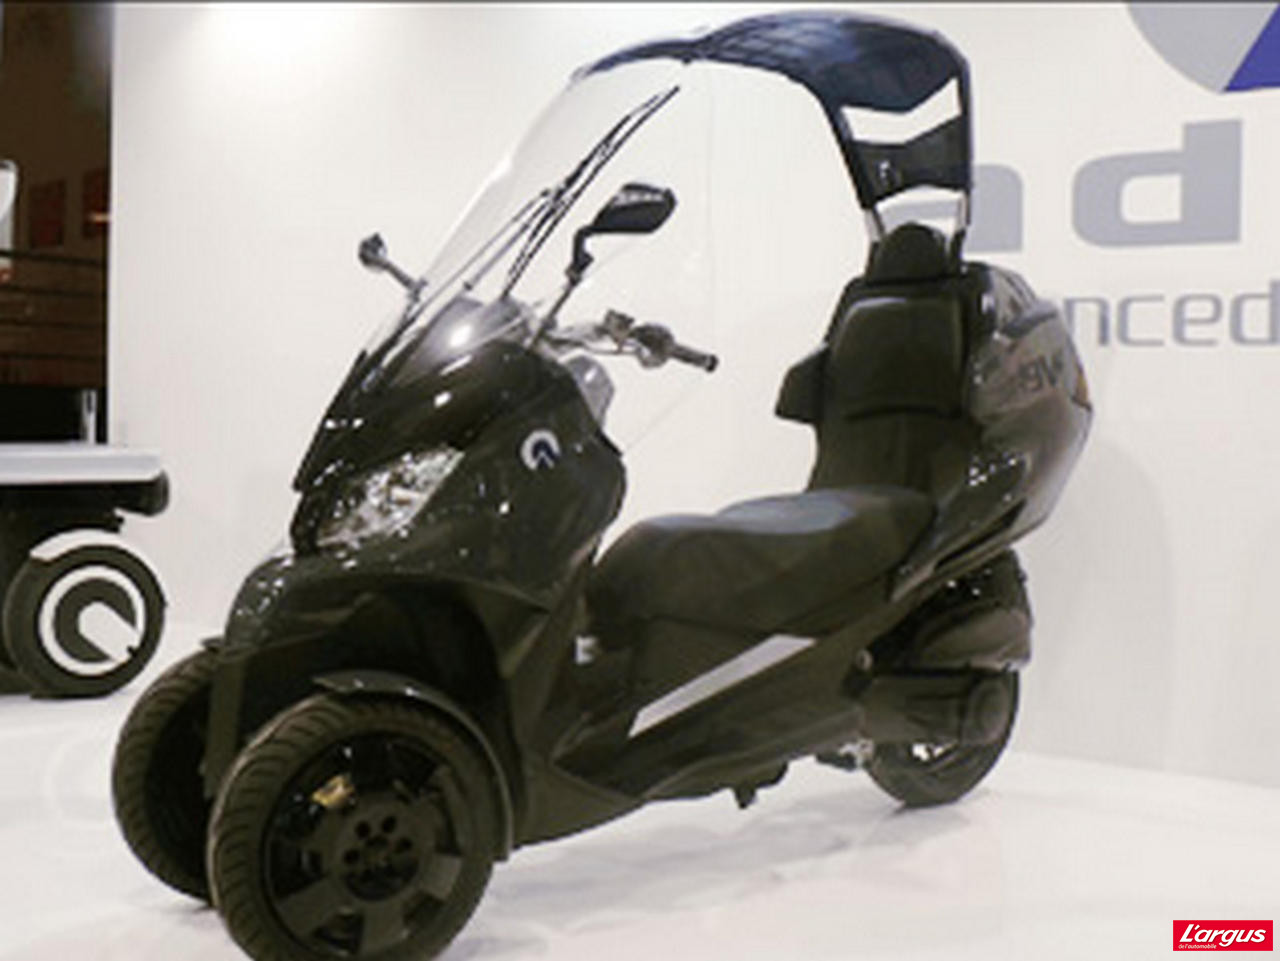 le scooter trois roues adiva ad3 300 bient t tokyo l 39 argus. Black Bedroom Furniture Sets. Home Design Ideas